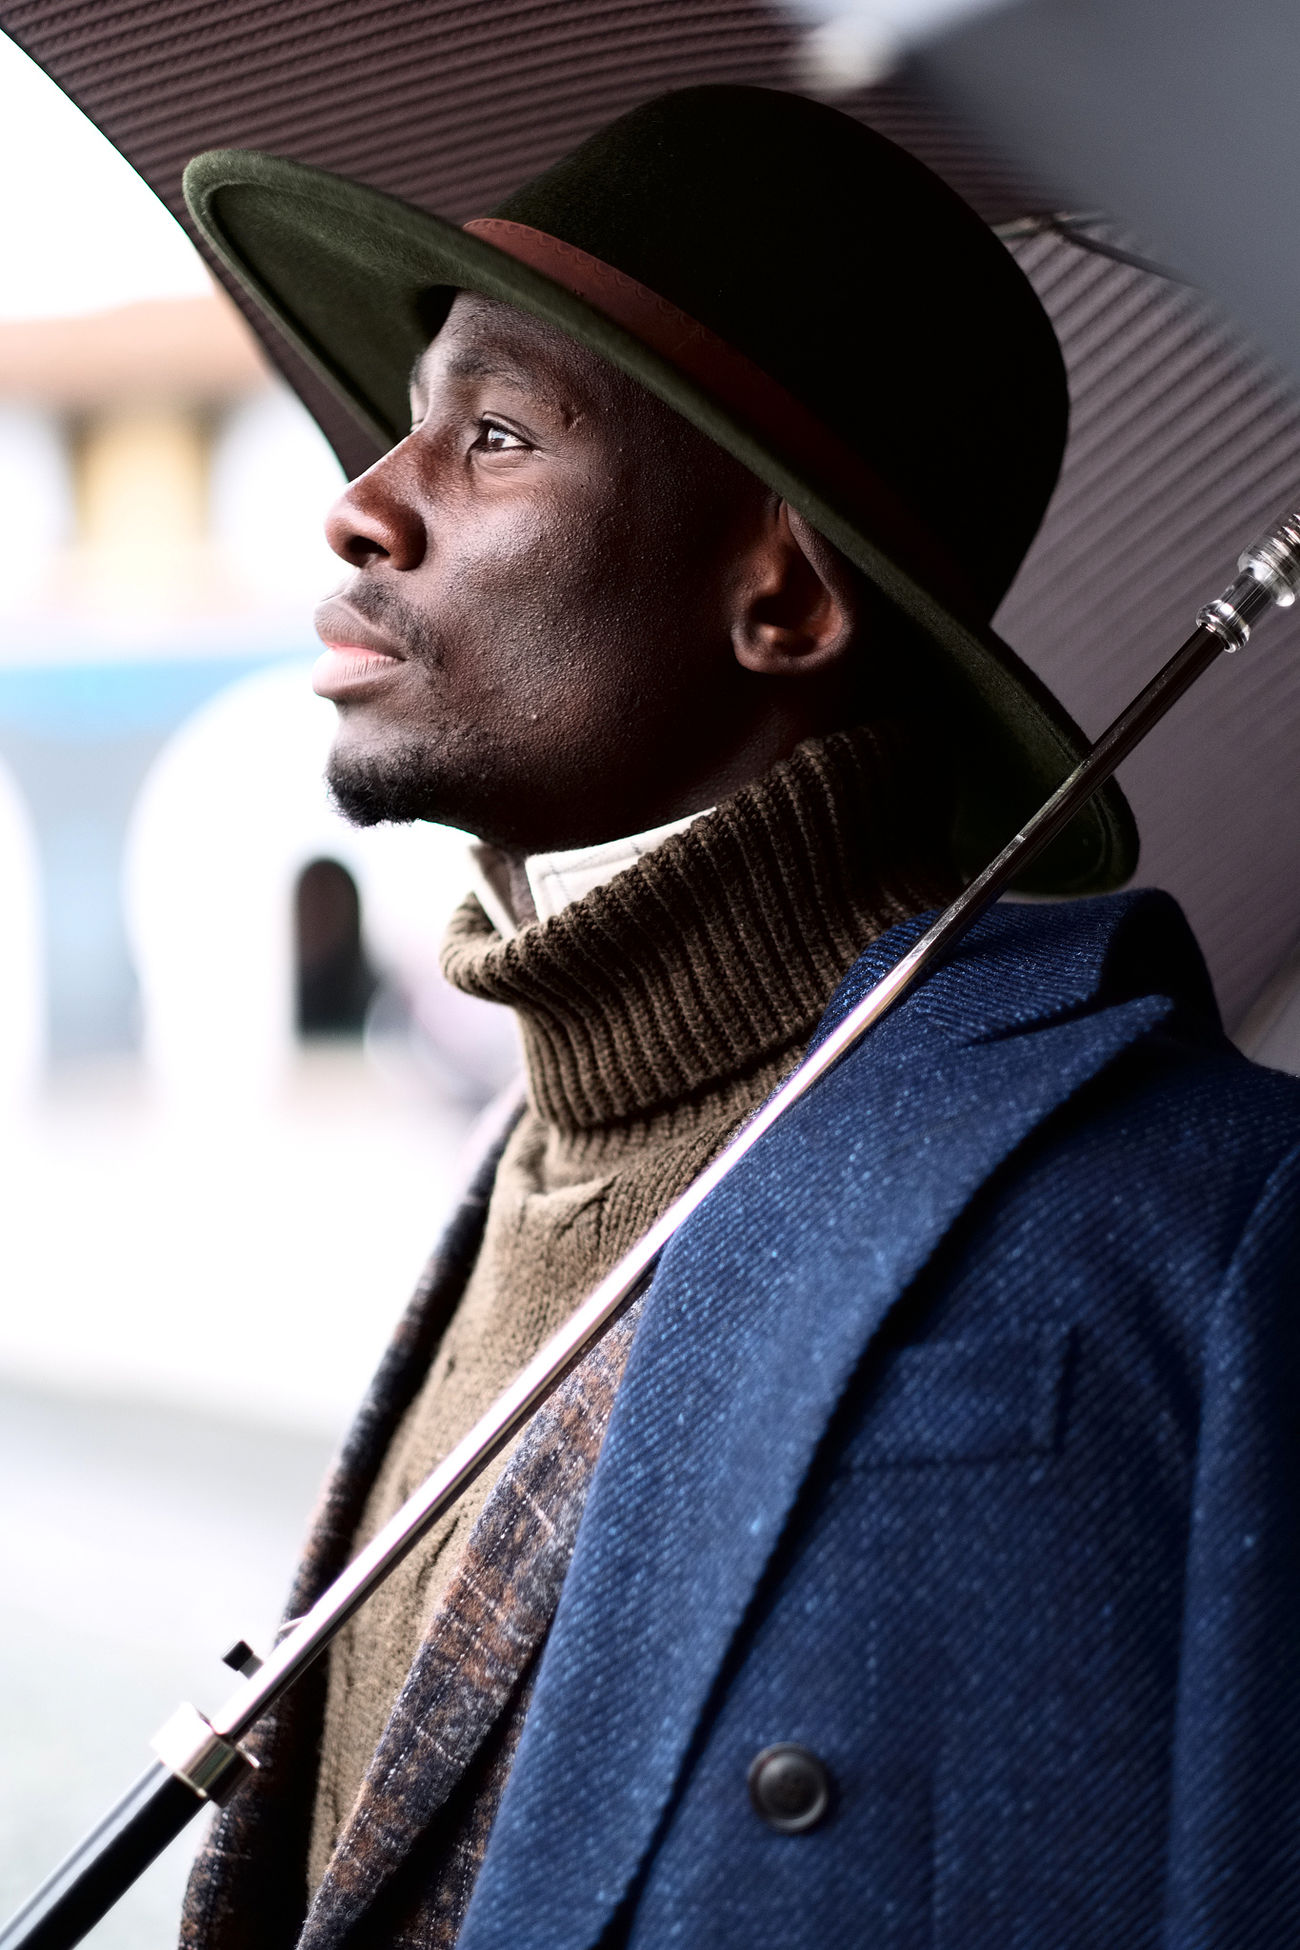 Portrait of Salmon taken in Florence during the 91th edition of Pitti Immagine Uomo. Afro Close-up Fashionable Hat Male Fashion One Person Outdoors Portrait Portrait Photography Rain Rainy Days